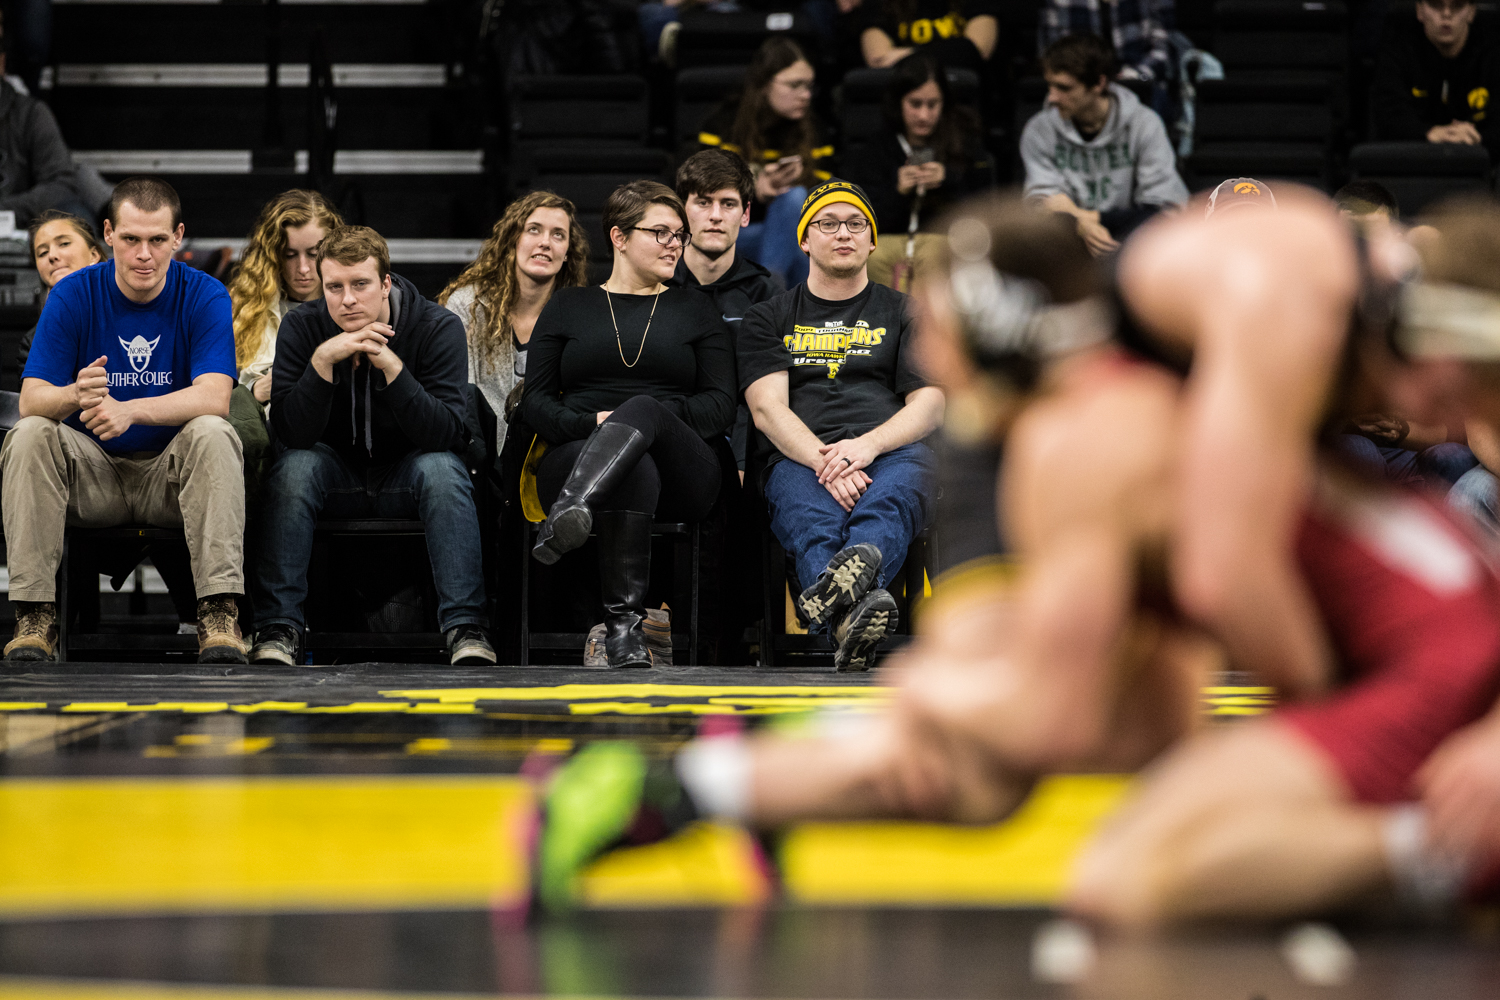 Iowa%27s+No.+4+Jacob+Warner+wrestles+Indiana%27s+Jake+Kleimola+at+197lb+during+a+wrestling+match+between+Iowa+and+Indiana+at+Carver-Hawkeye+Arena+on+Friday%2C+February+15%2C+2019.+The+Hawkeyes%2C+celebrating+senior+night%2C+defeated+the+Hoosiers+37-9.